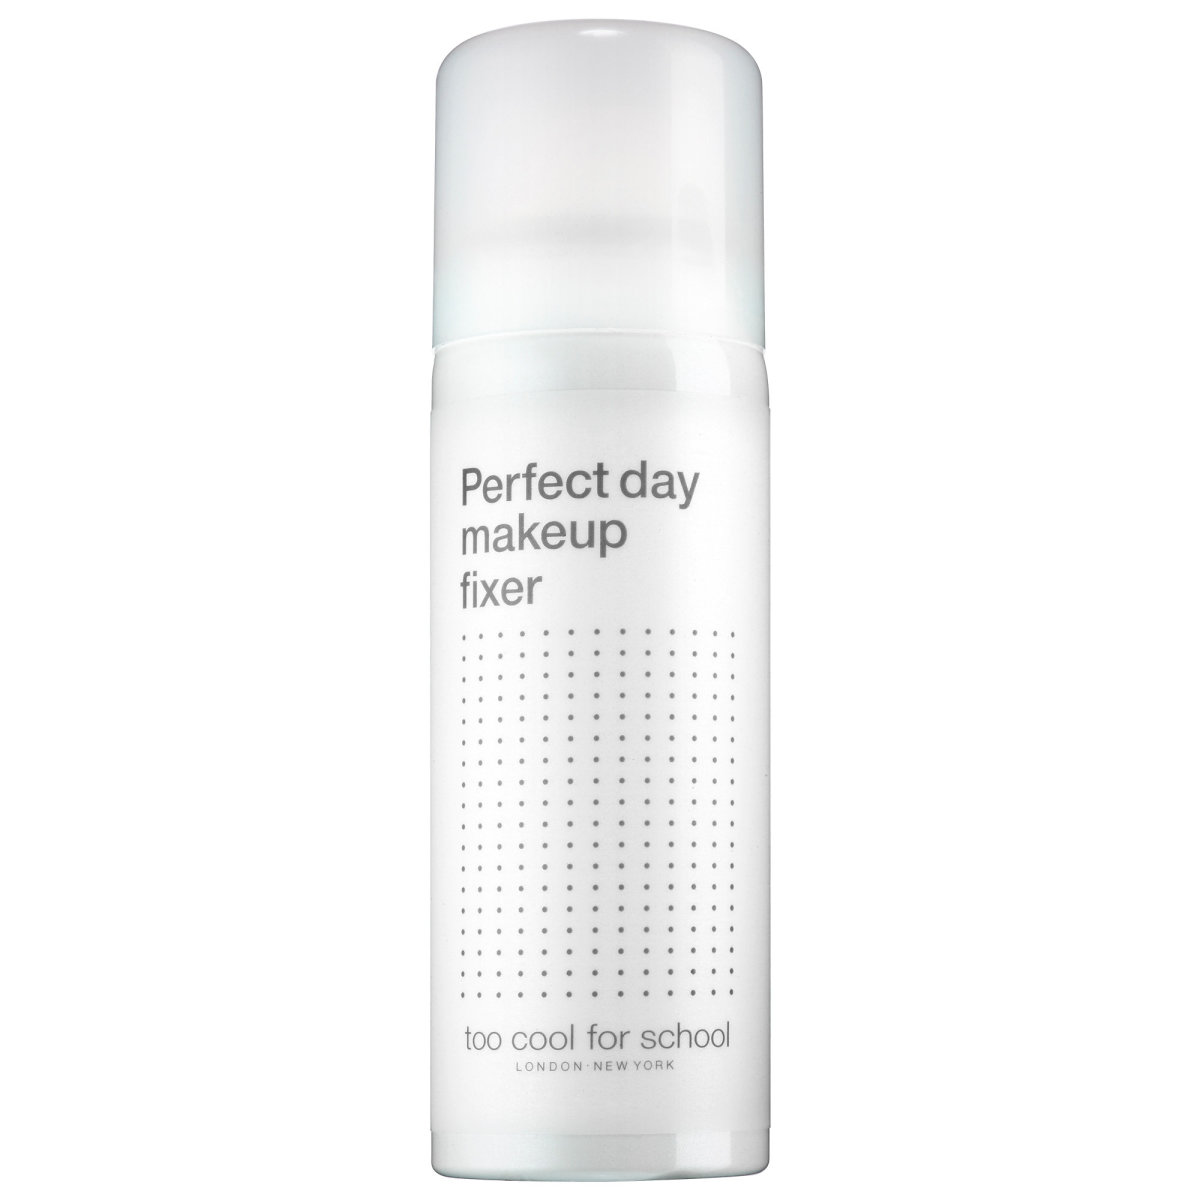 Too Cool For School Perfect Day Makeup Fixer Spray